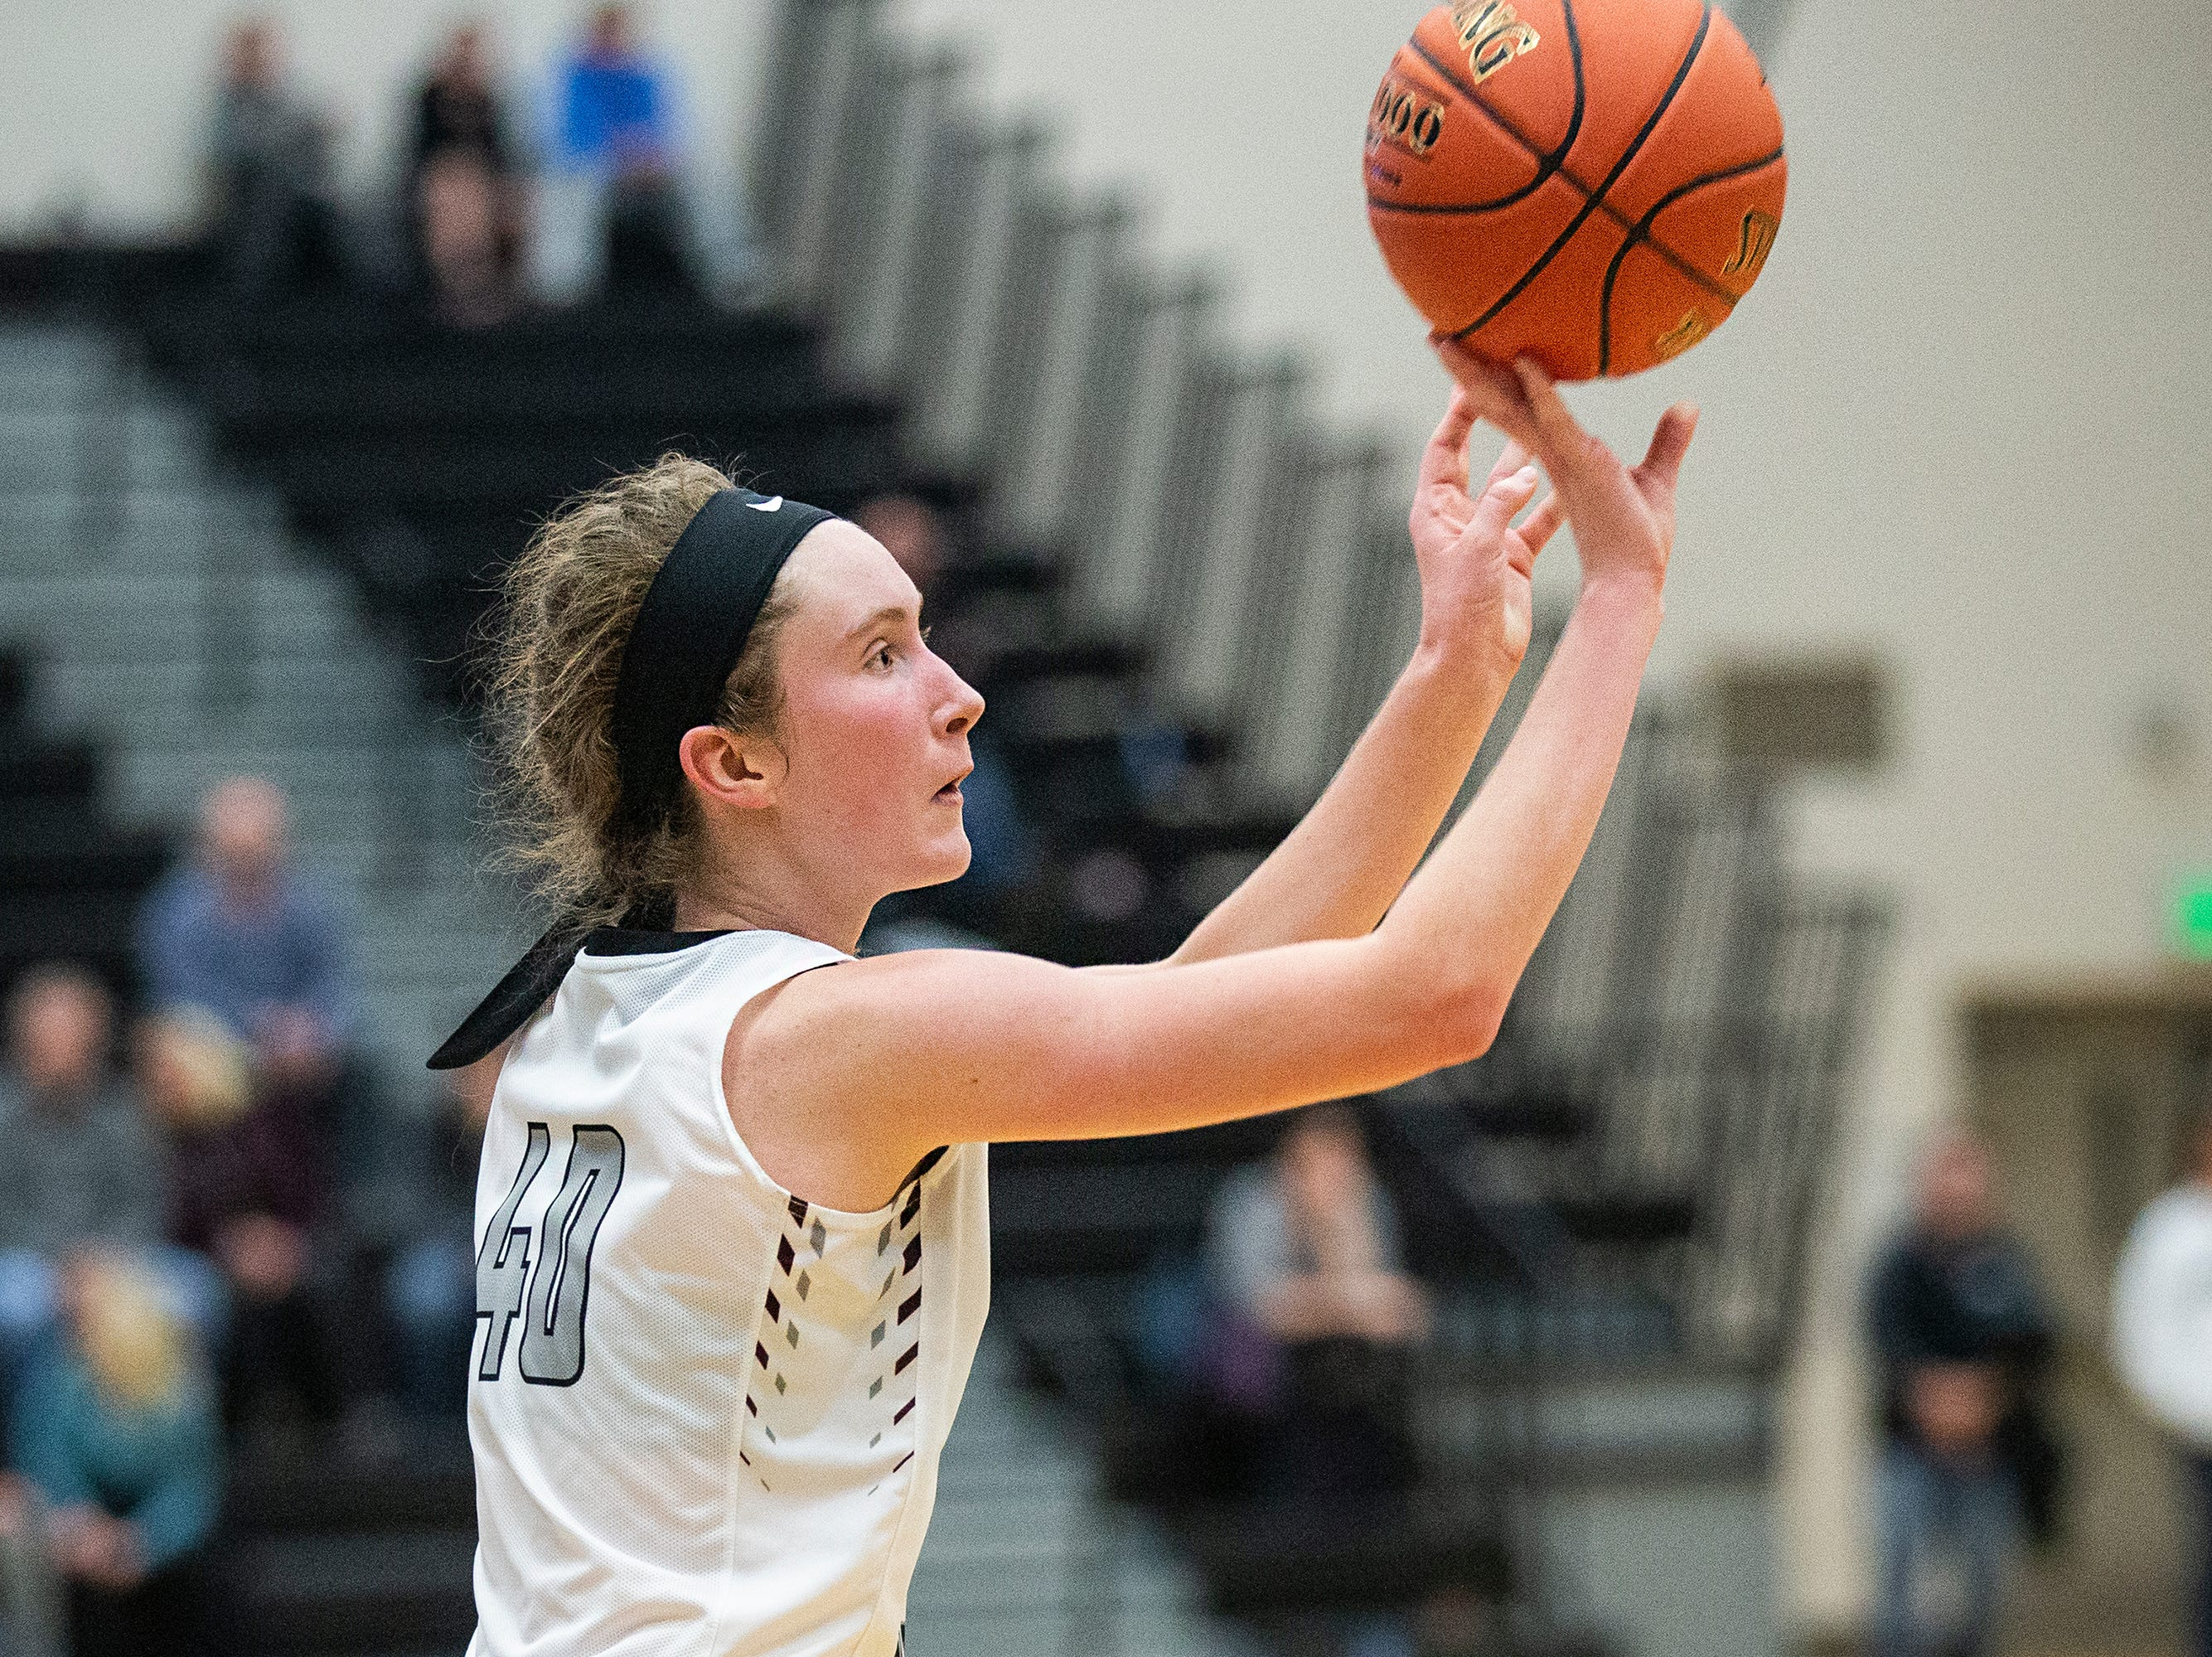 Centennial's Meg Burns shoots the ball during the Southeast Polk vs. Ankeny Centennial girls' basketball game on Tuesday, Nov. 27, 2018, at Ankeny Centennial High School.